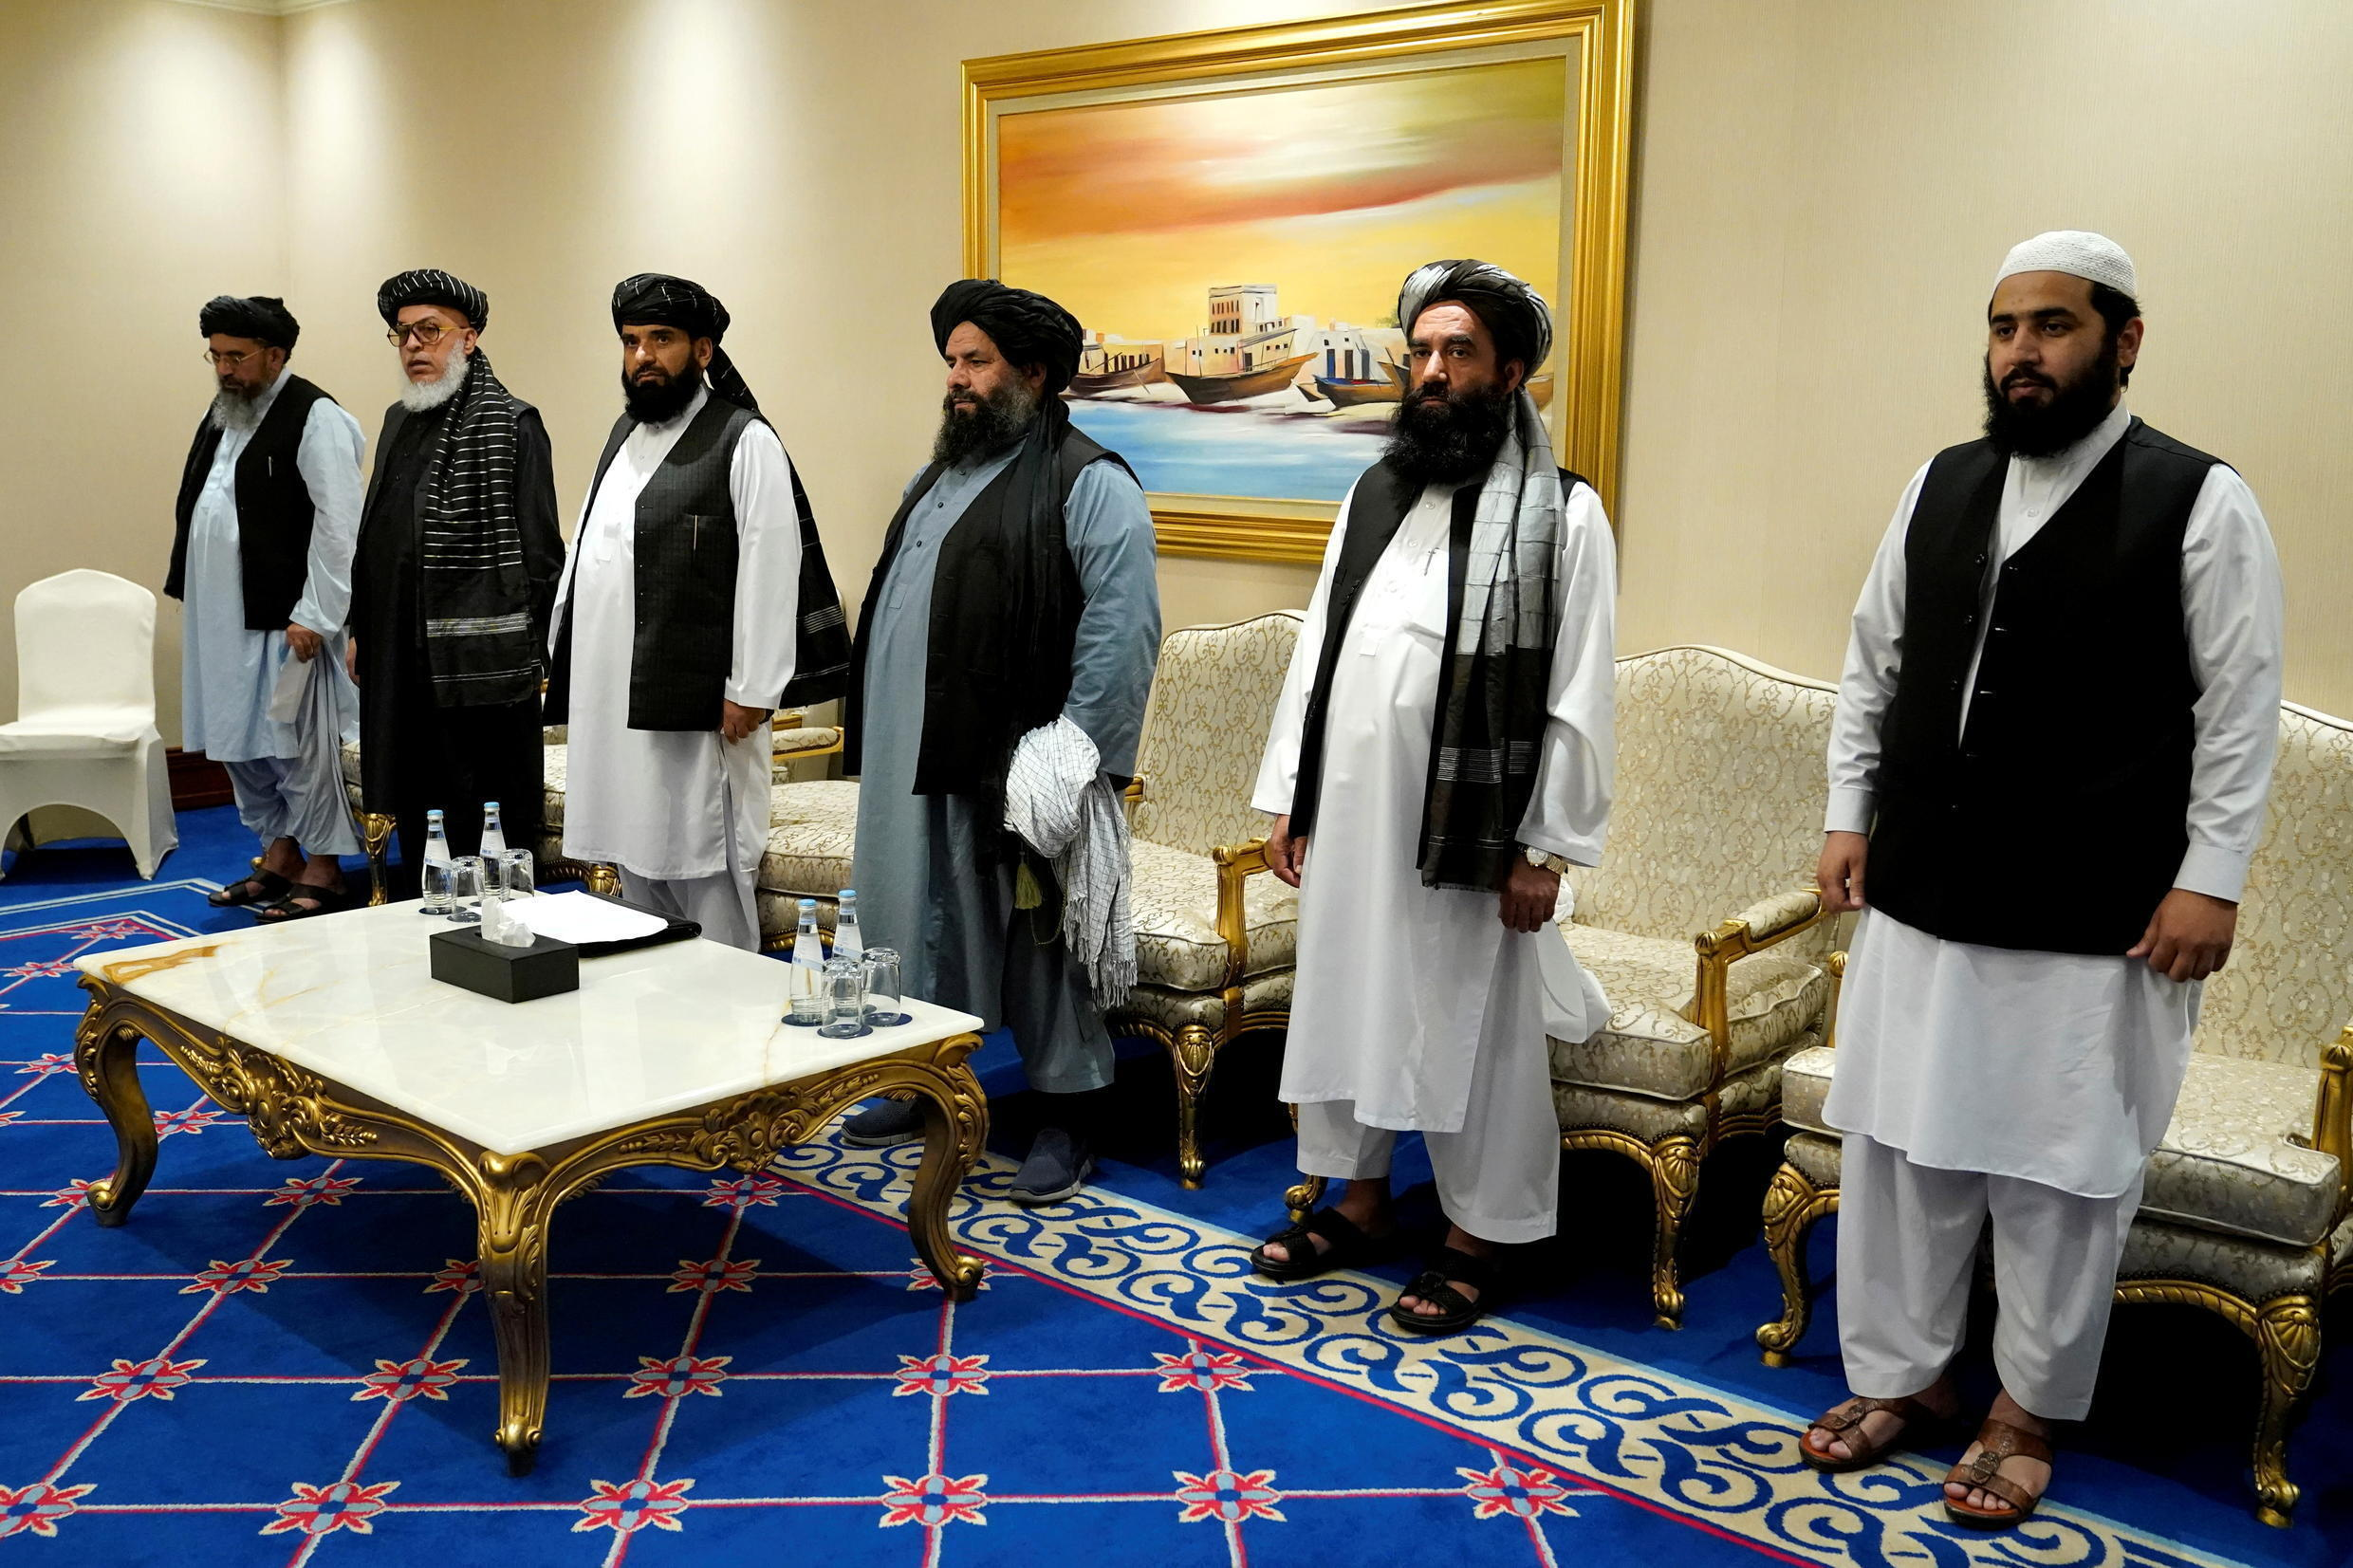 Members of the Taliban peace negotiating team attend a meeting with US Secretary of State Mike Pompeo amid talks between the Taliban and the Afghan government, in Doha, Qatar, November 21, 2020.